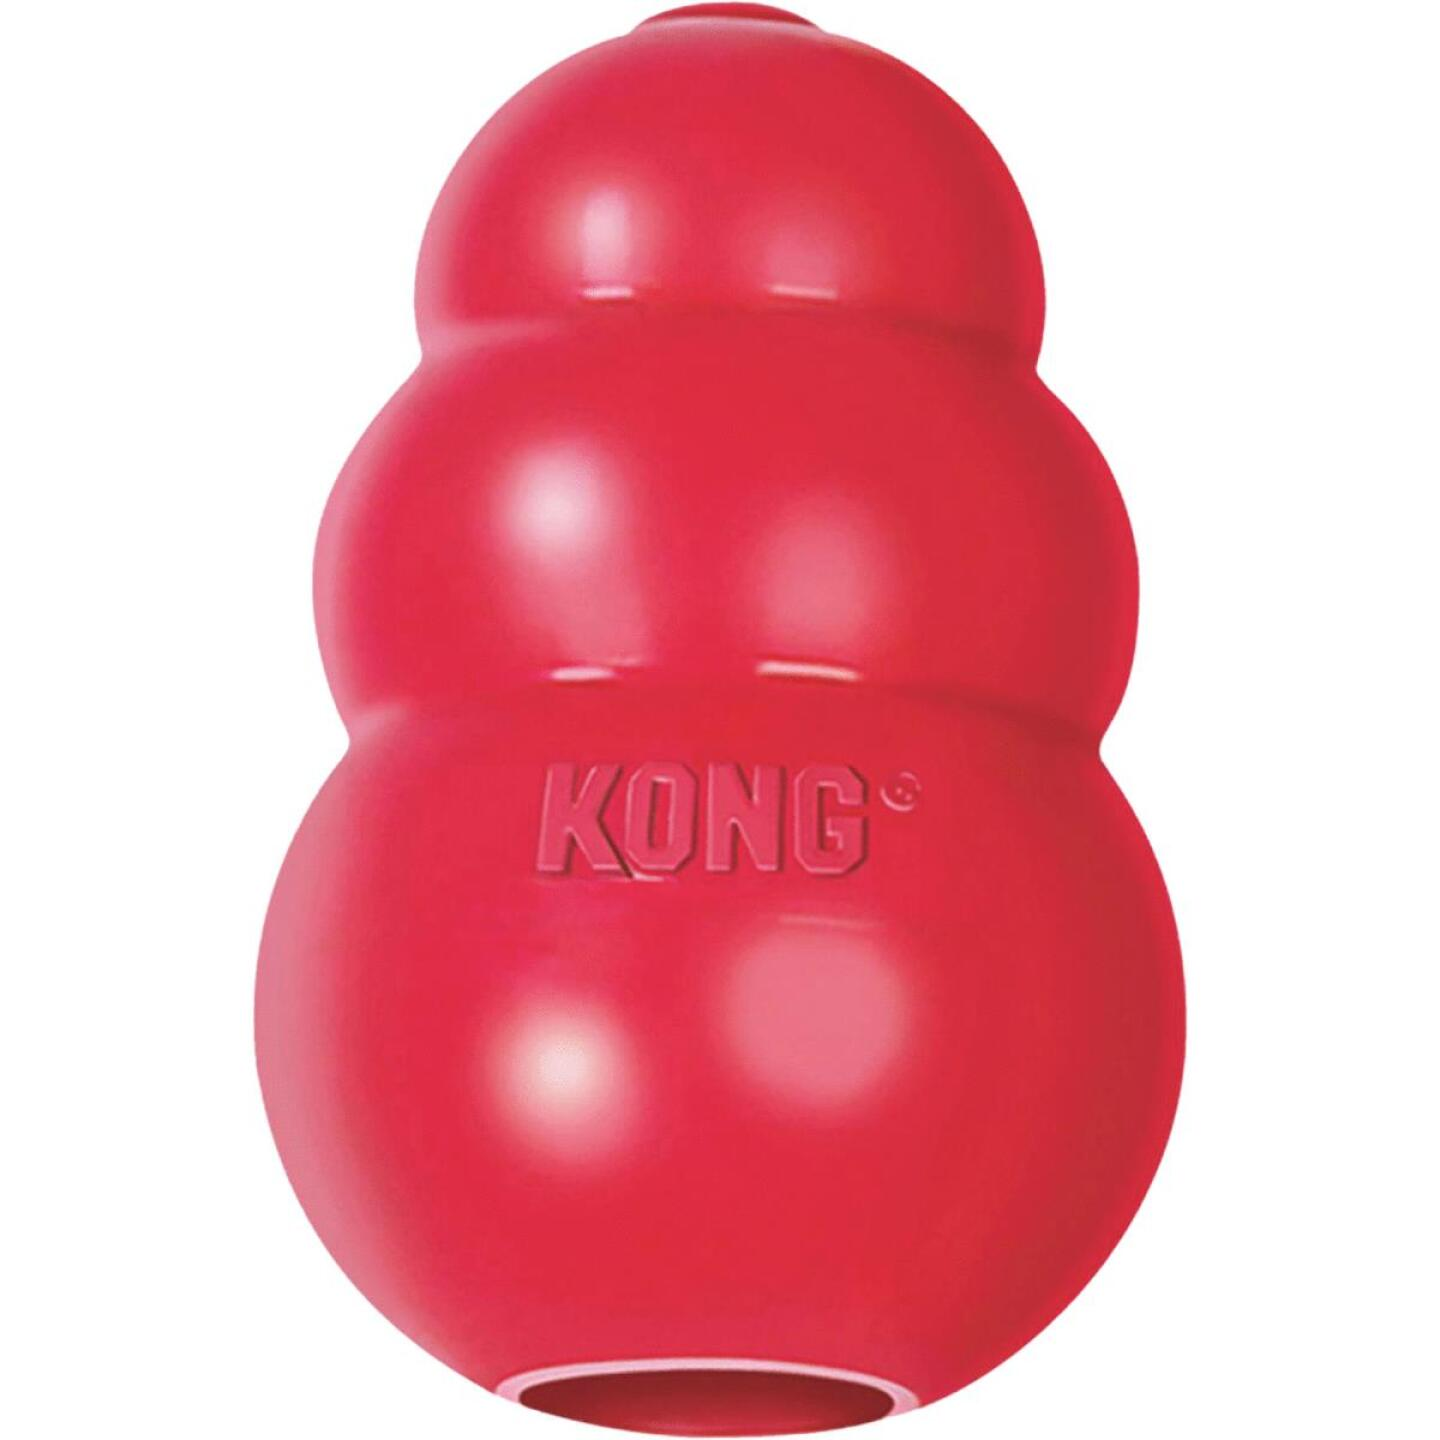 Kong Classic Dog Chew Toy, Up to 20 Lb. Image 3